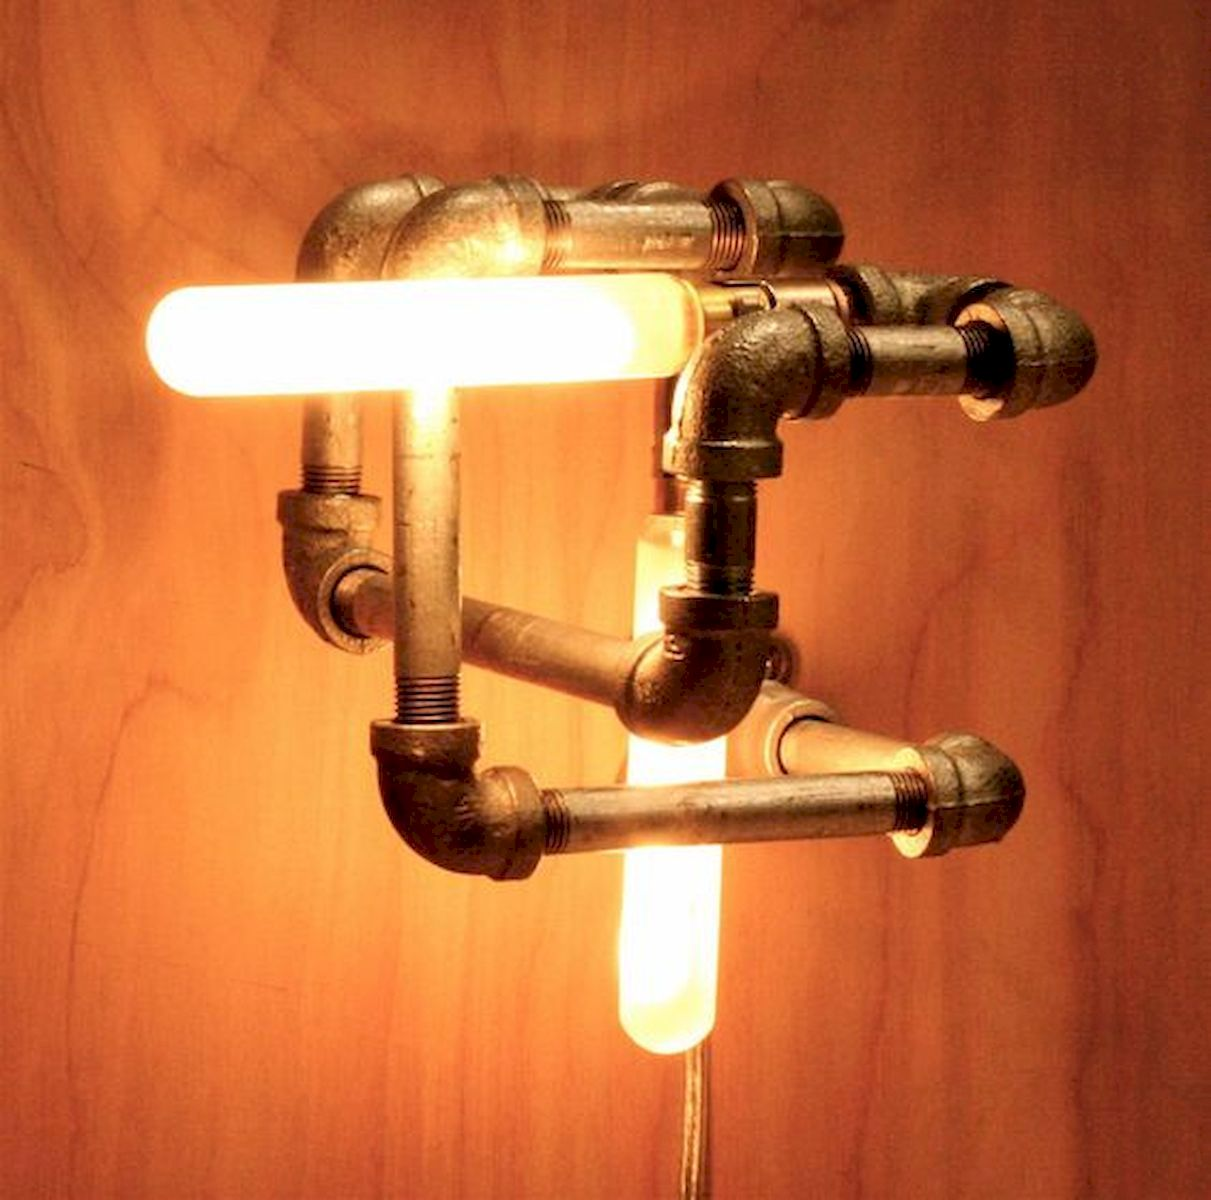 40 Fantastic DIY Lamps Decoration Ideas for Your Home (32)